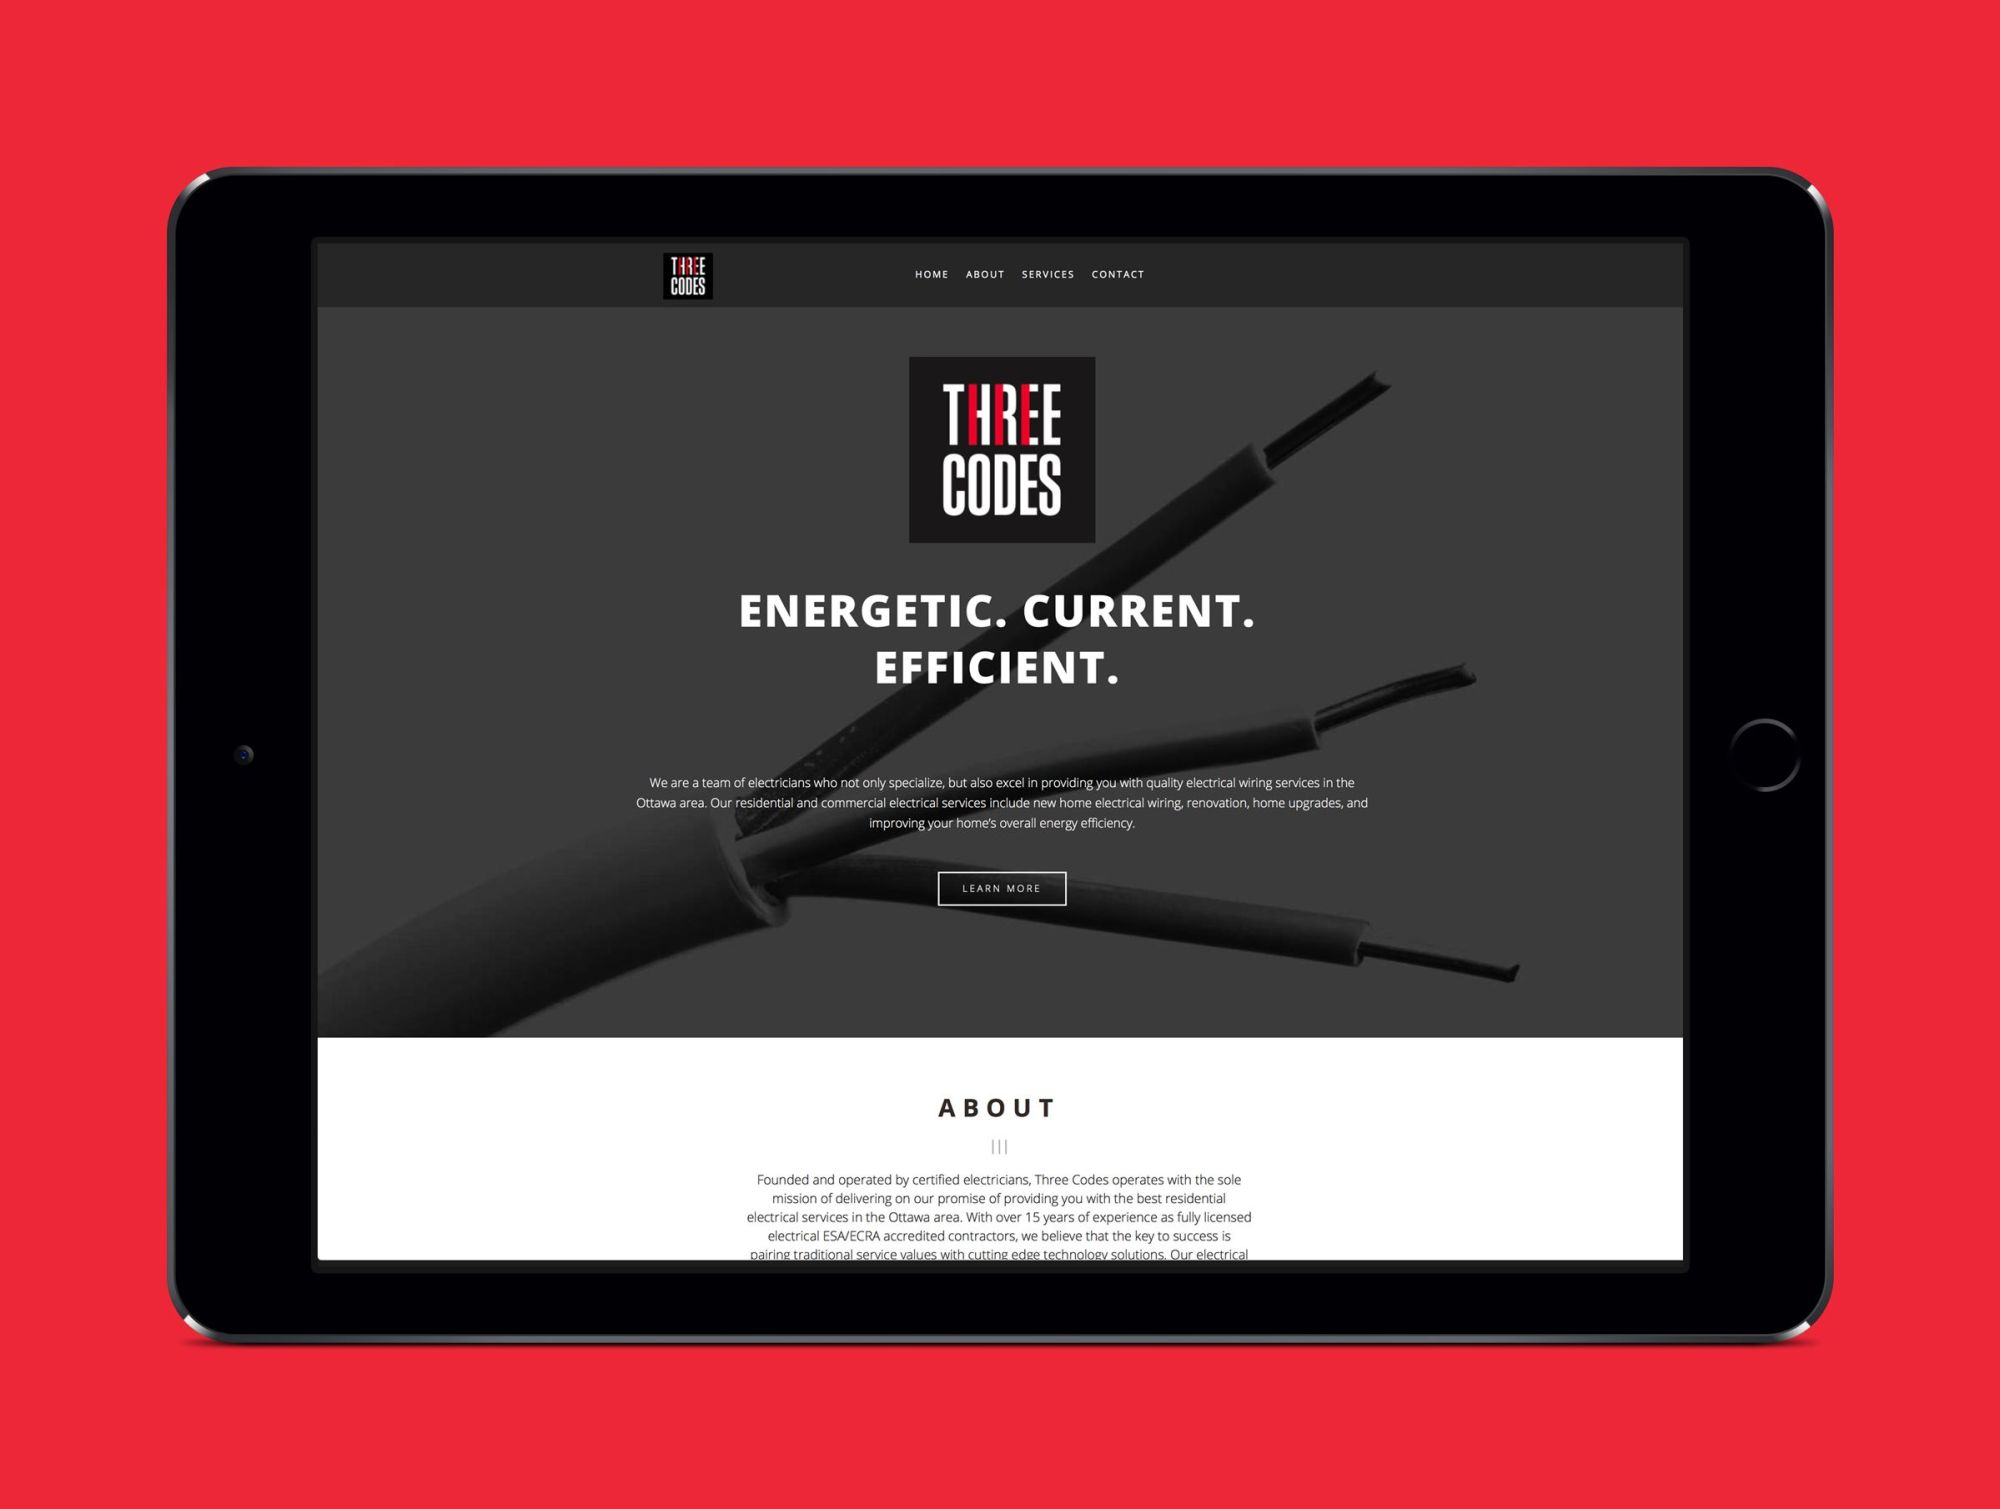 hight resolution of website for three codes an electrical company by ottawa graphic designer idapostle